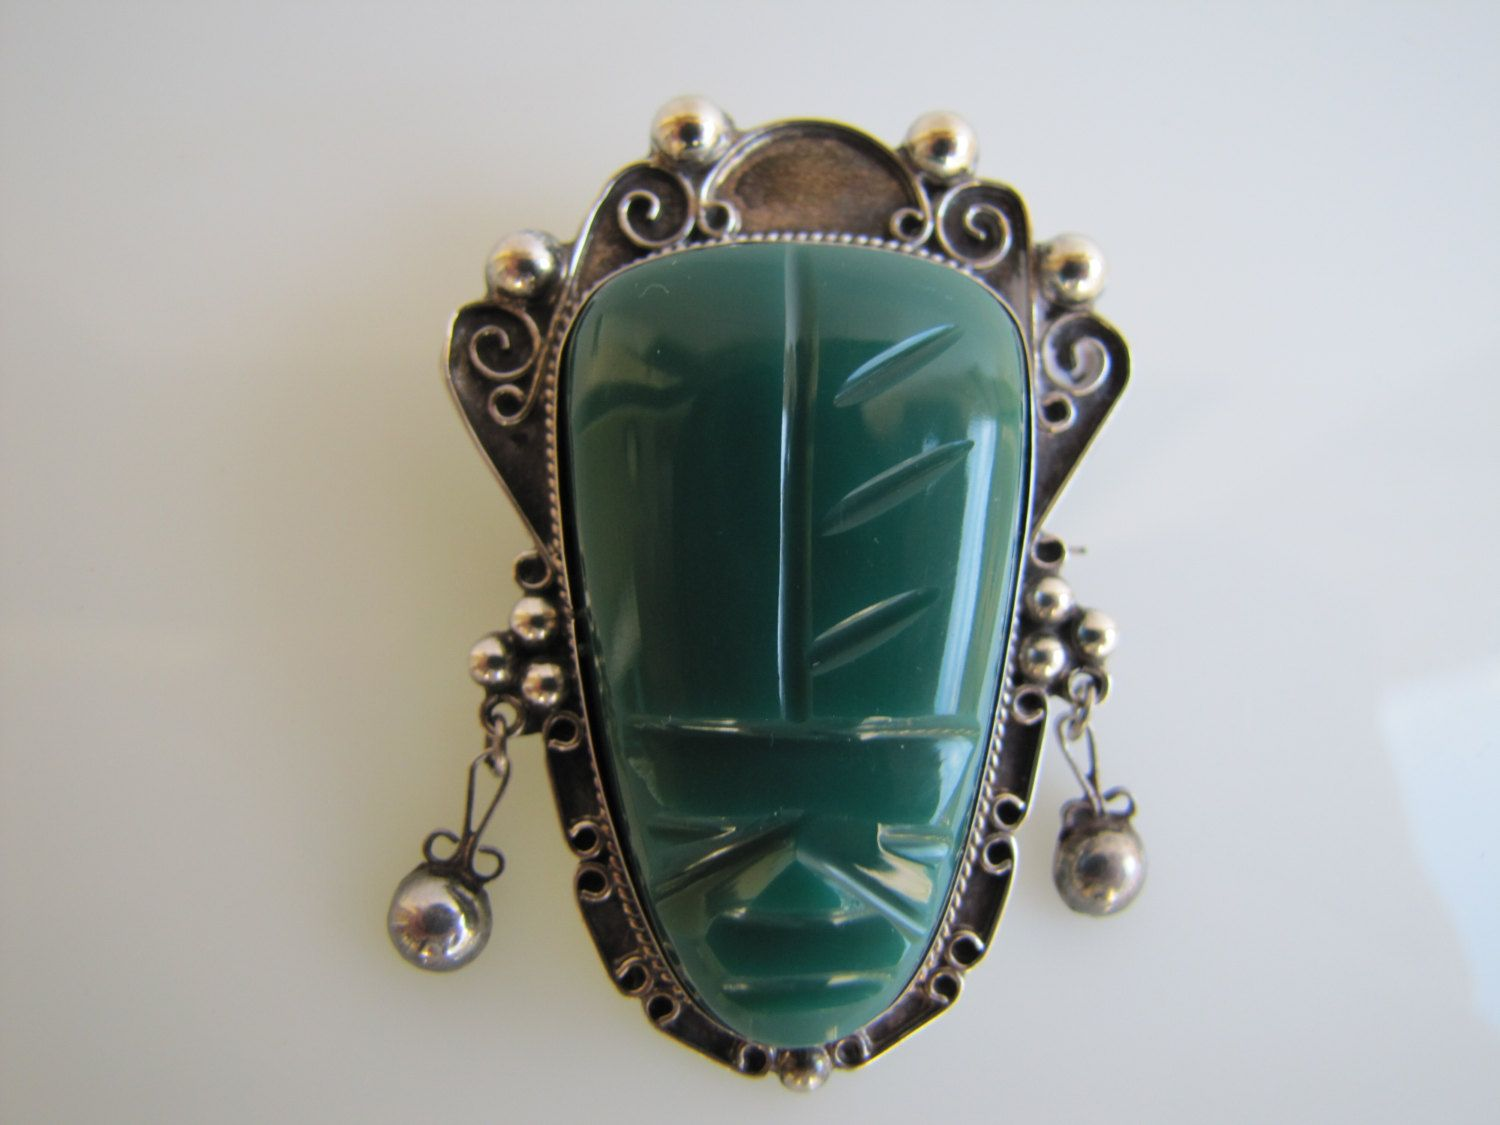 Vintage Taxco Mexico Figural Silver Brooch Large Dramatic Green Carved Onyx Face Aztec Design Sterli Silver Ring Designs Mexican Silver Jewelry Silver Brooch